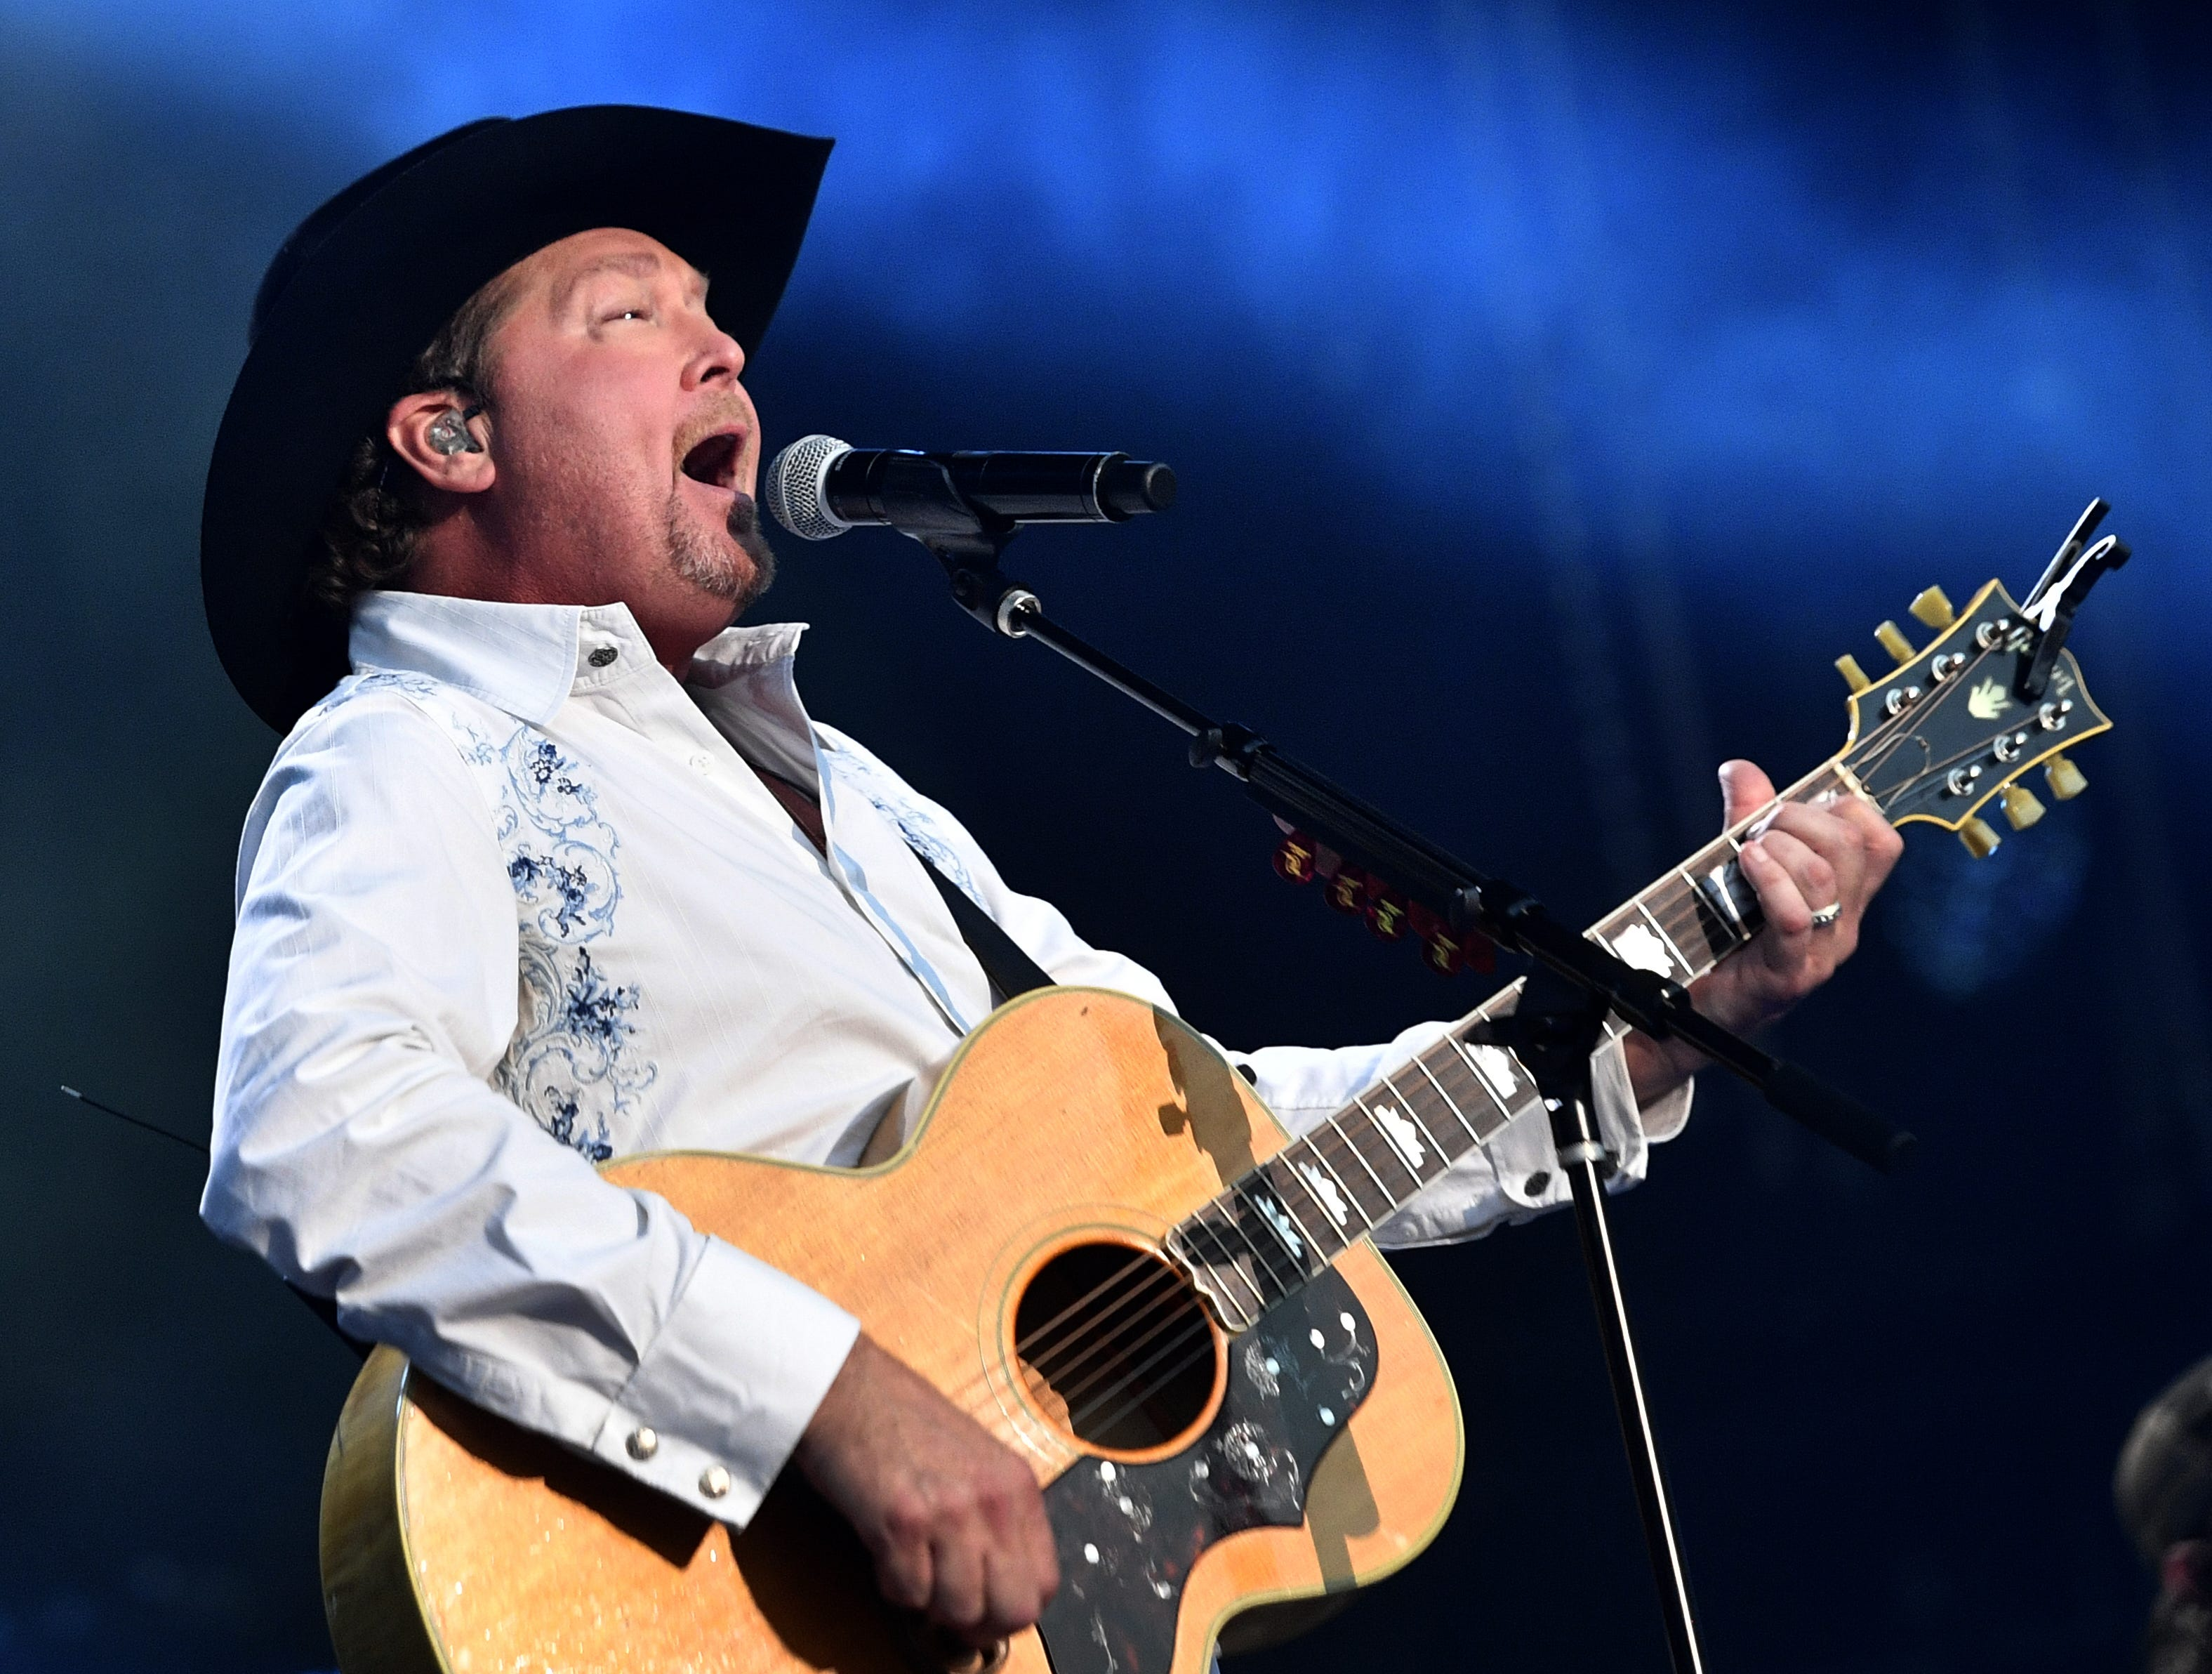 Honky Tonkin' with Tracy Lawrence is scheduled to play the Budweiser Forever Country Stage at CMA Fest 2019.